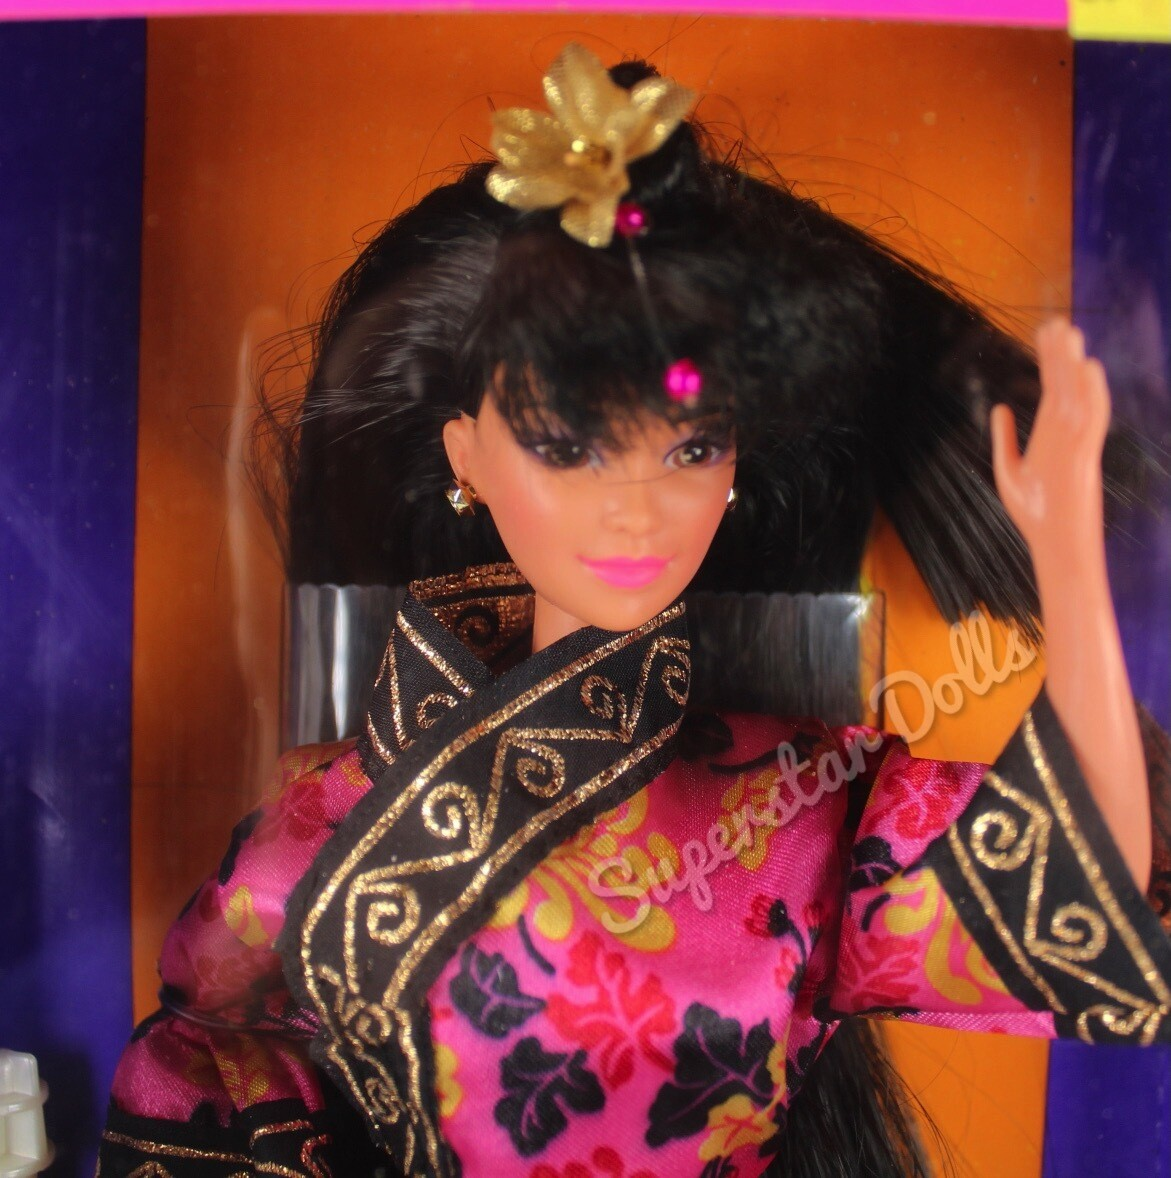 1993 Chinese Barbie Doll from the Dolls of the World Collection